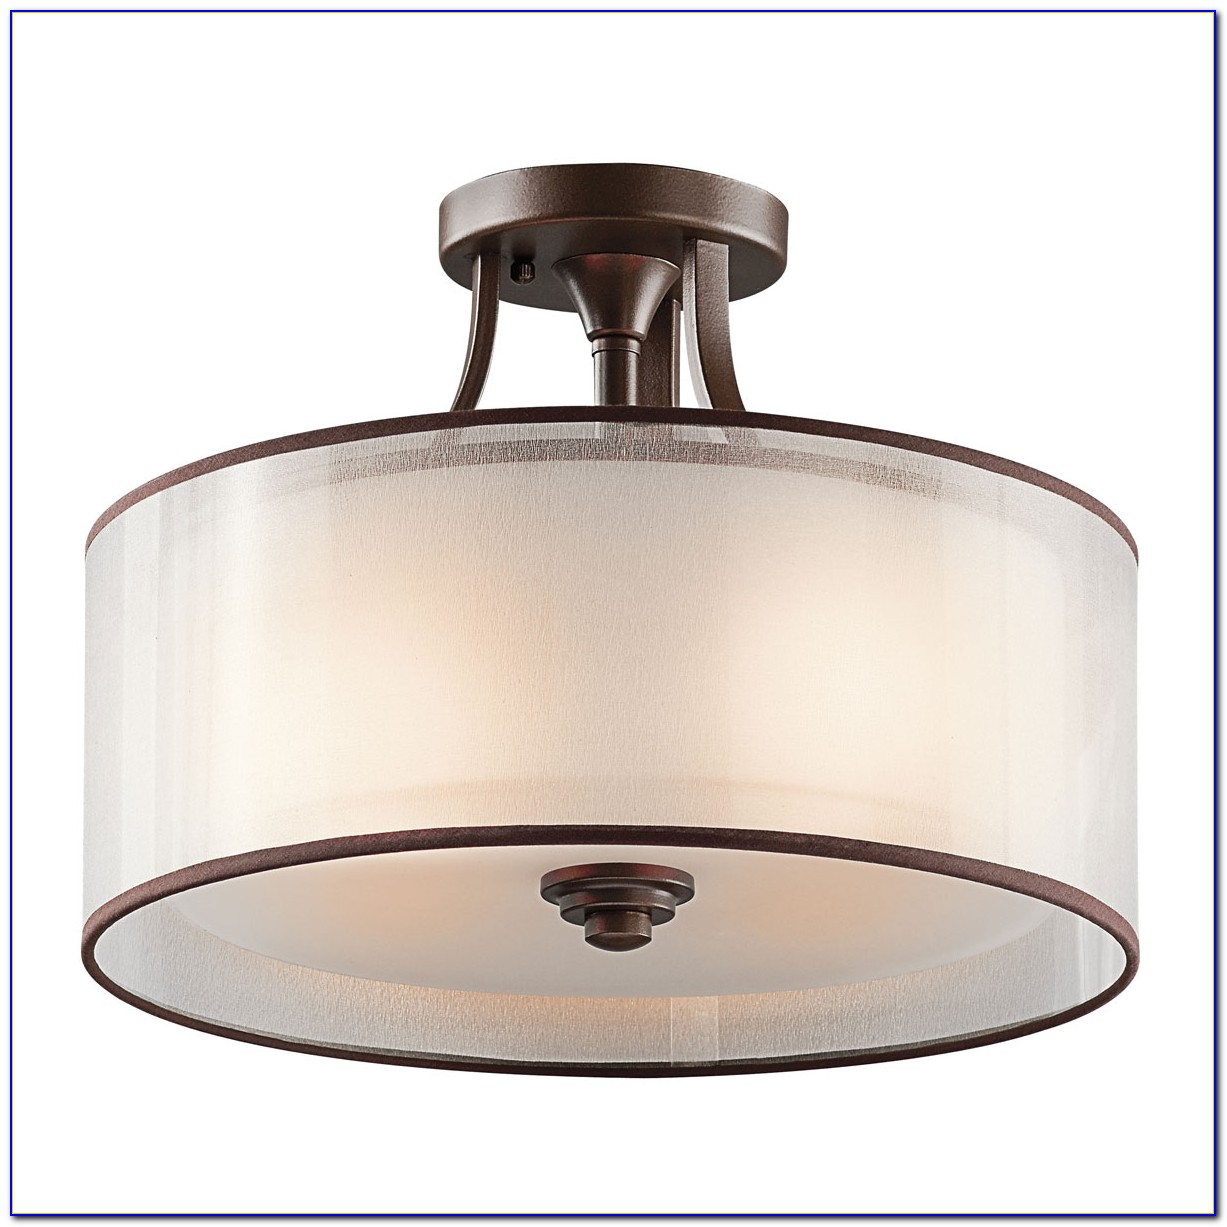 Flush Mount Ceiling Light Fixtures Installation